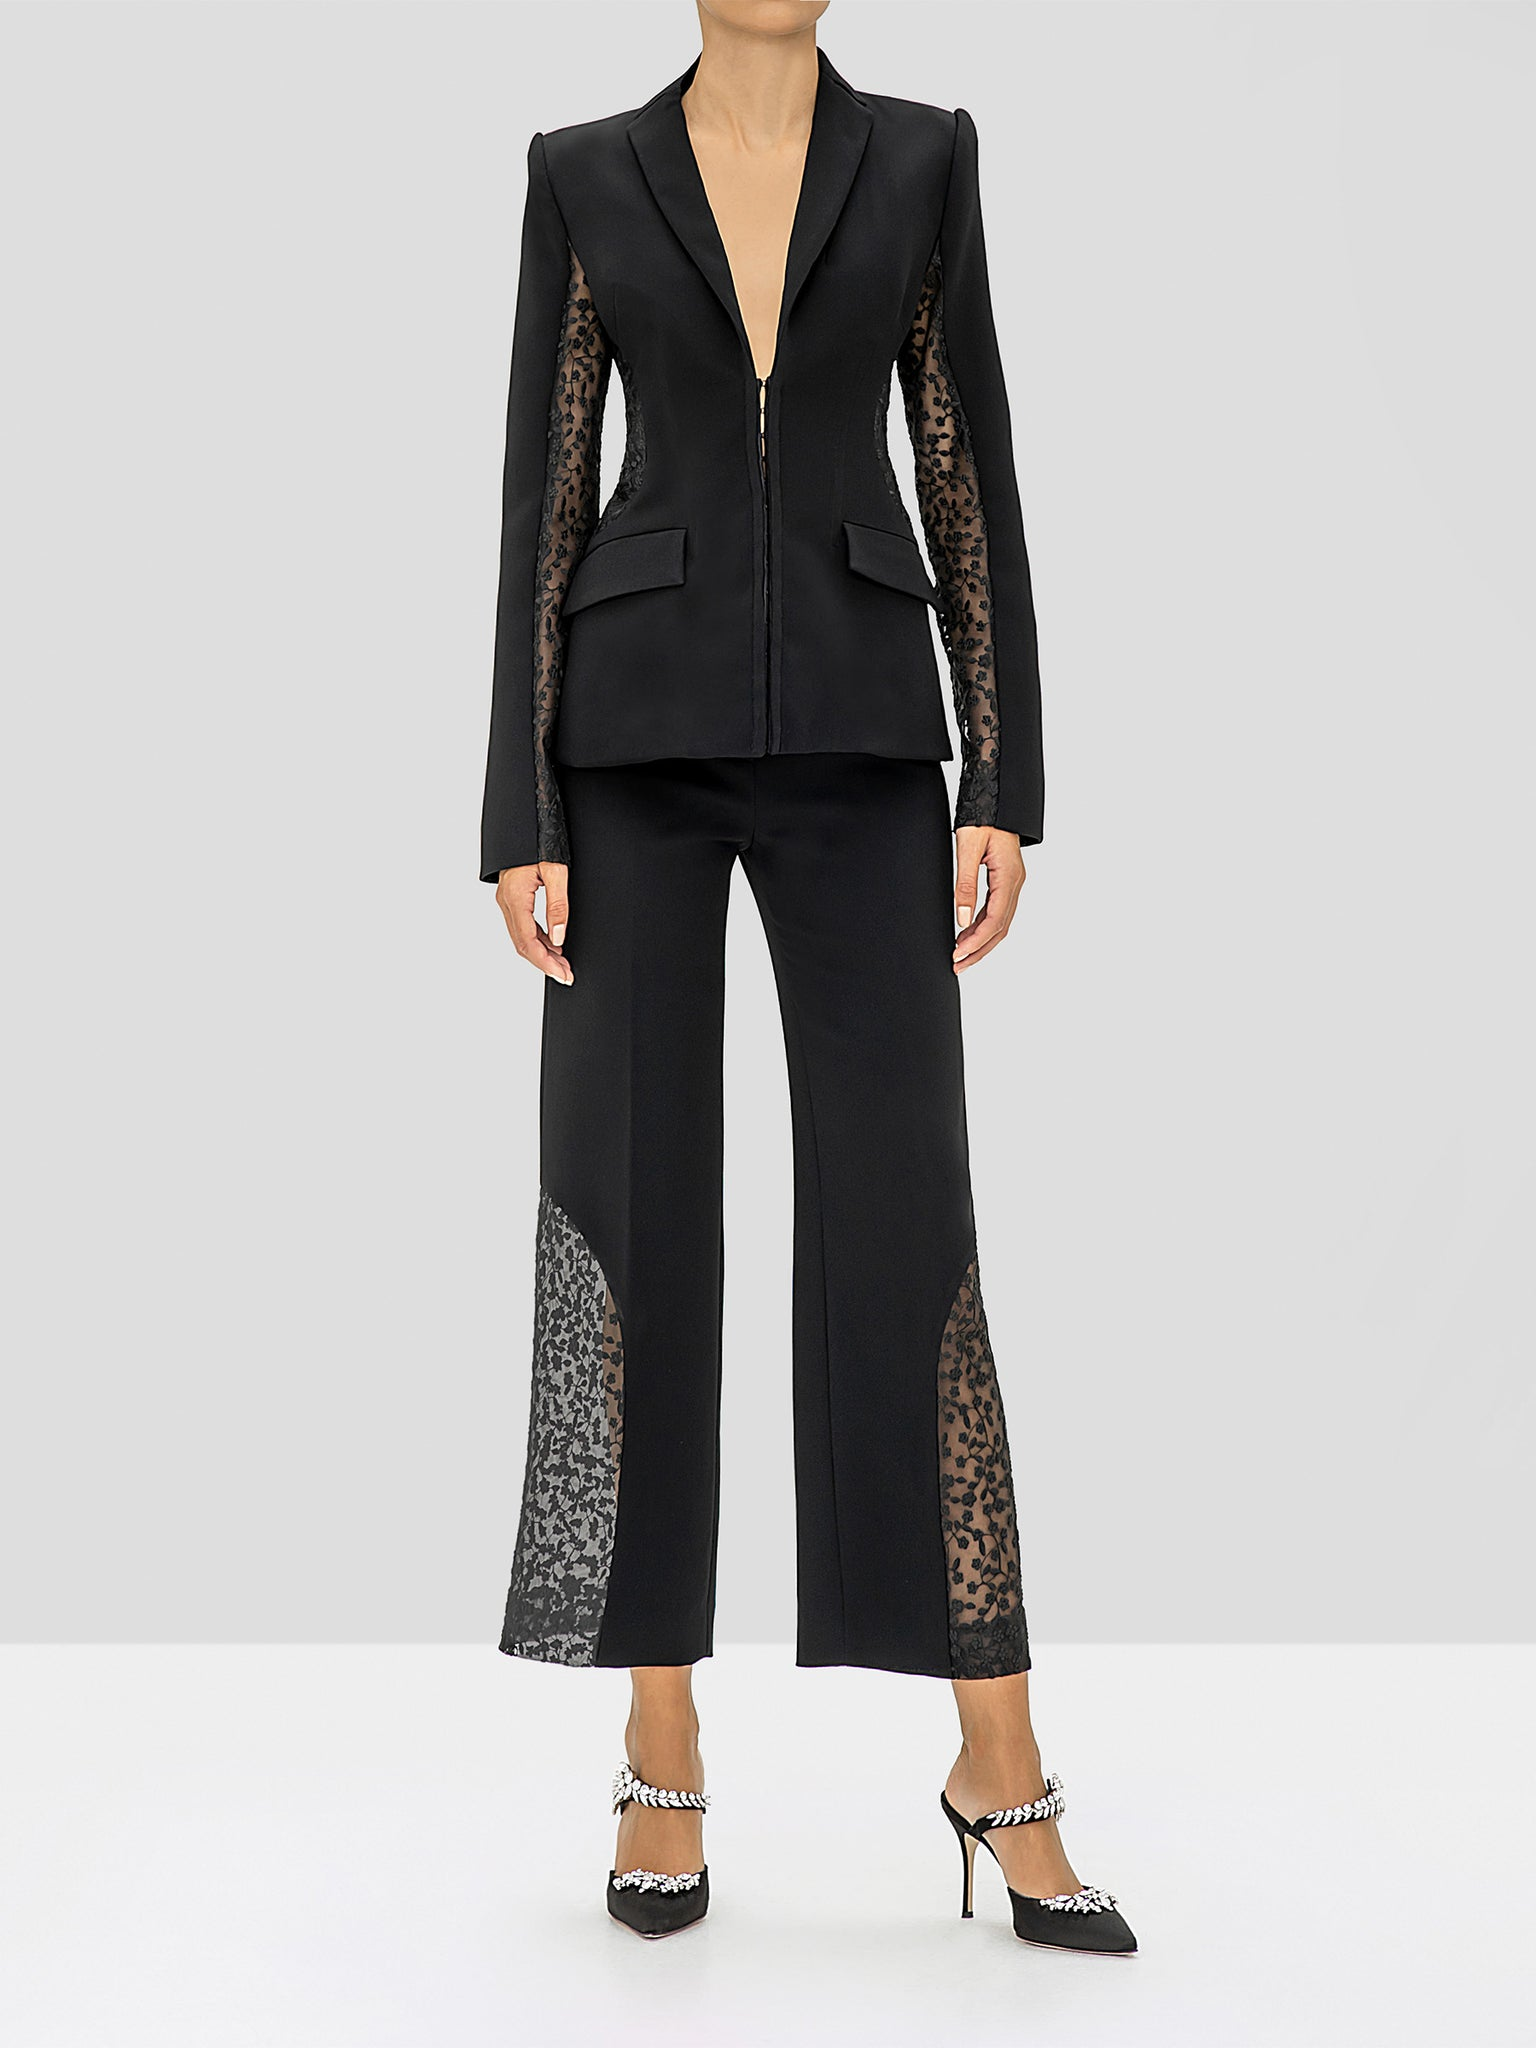 Alexis Novata Pant and Amrita Jacket in Black from the Holiday 2019 Ready To Wear Collection